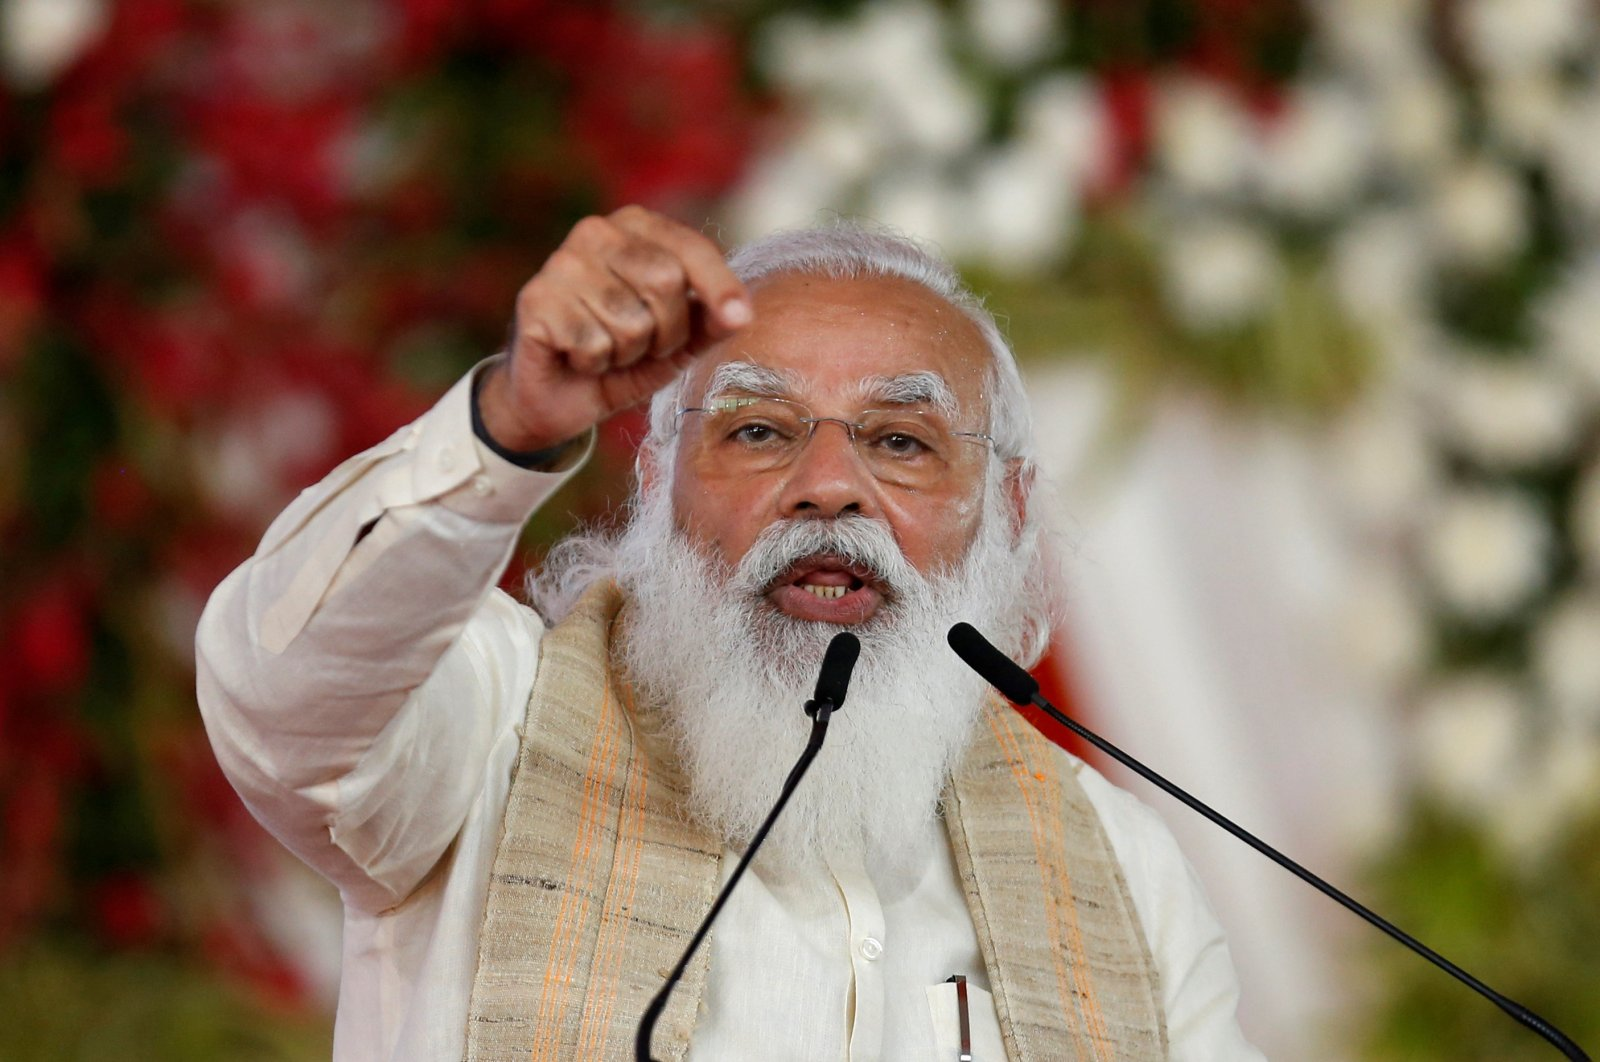 """India's Prime Minister Narendra Modi addresses a gathering before flagging off the """"Dandi March,"""" or Salt March, to celebrate the 75th anniversary of India's Independence, in Ahmedabad, India, March 12, 2021. (Reuters Photo)"""